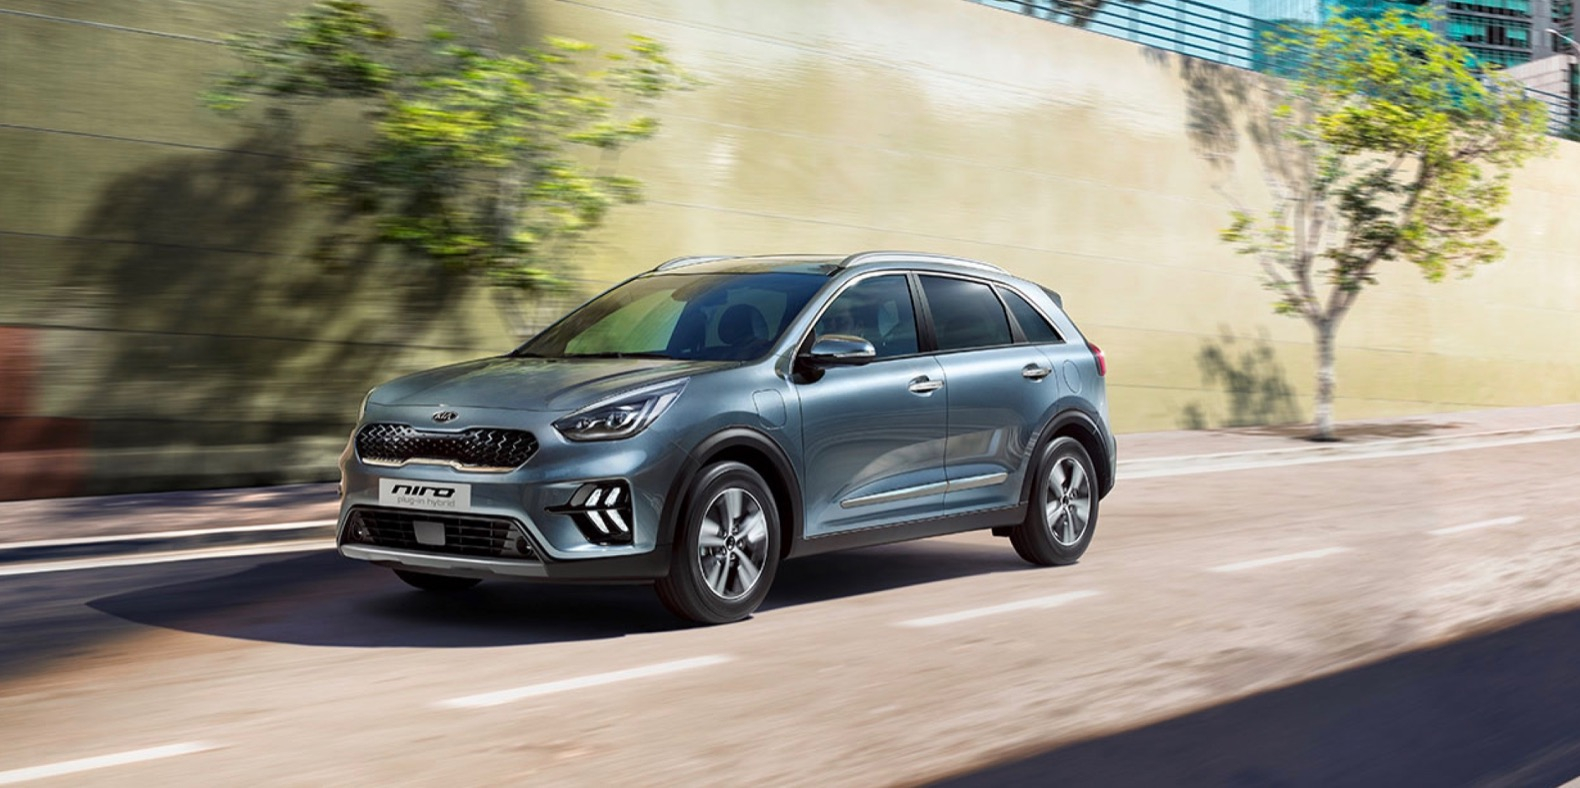 Refreshed Kia Niro Hybrid And Plug-In Hybrid Head To Geneva inside 2021 Kia Niro Plug In Hybrid Electric Feature, Specification Update